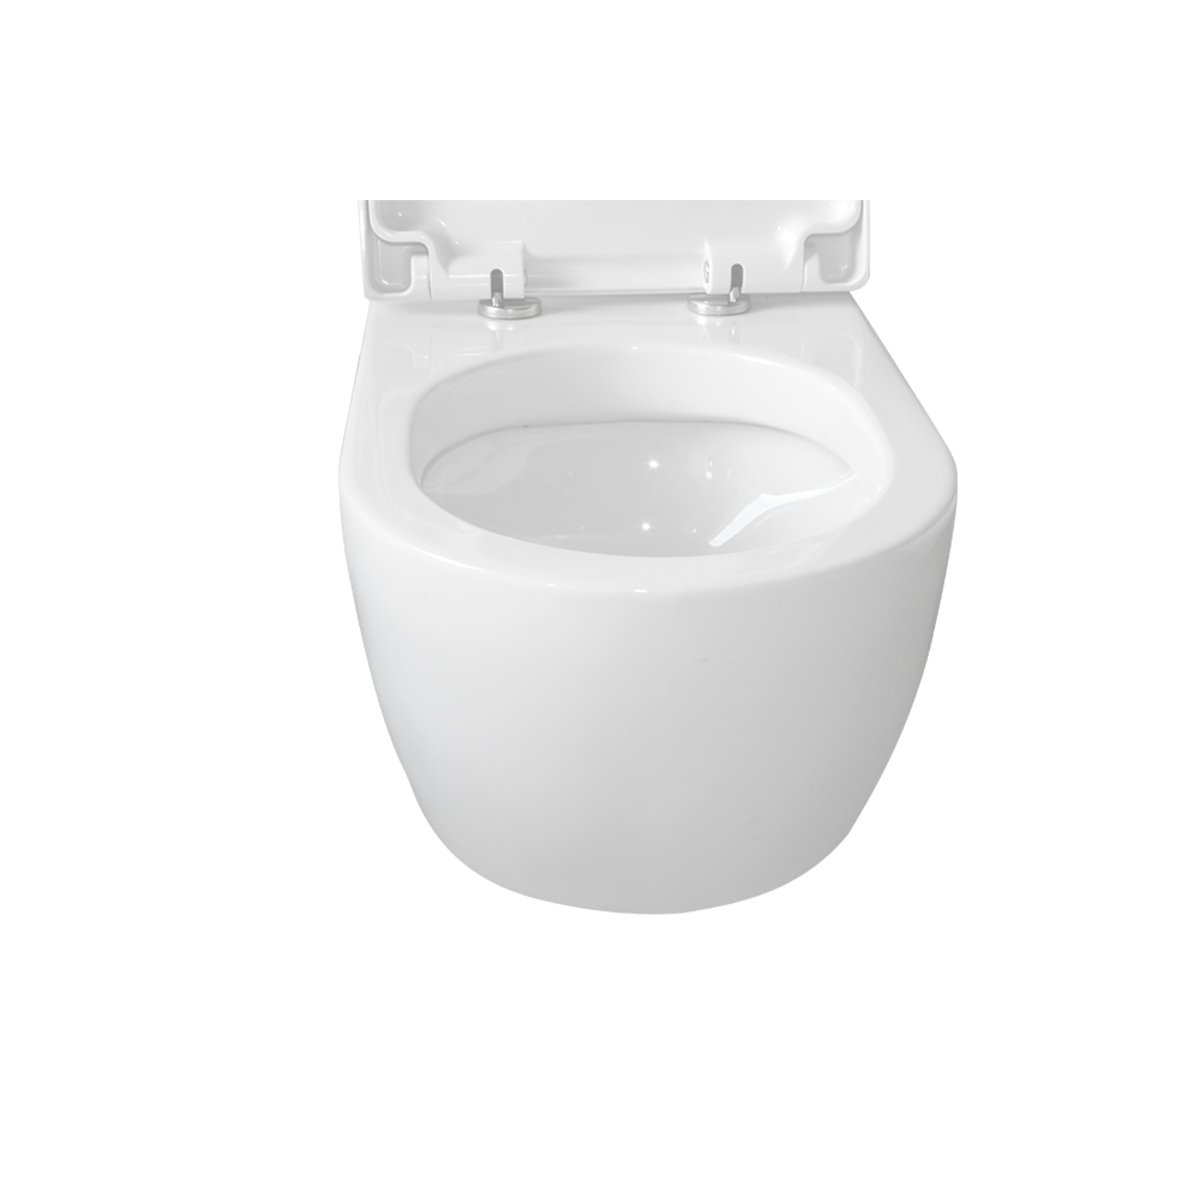 Throne bathrooms salina wc suspendu sans abattant blanc ct2019 - Abattant wc suspendu ...